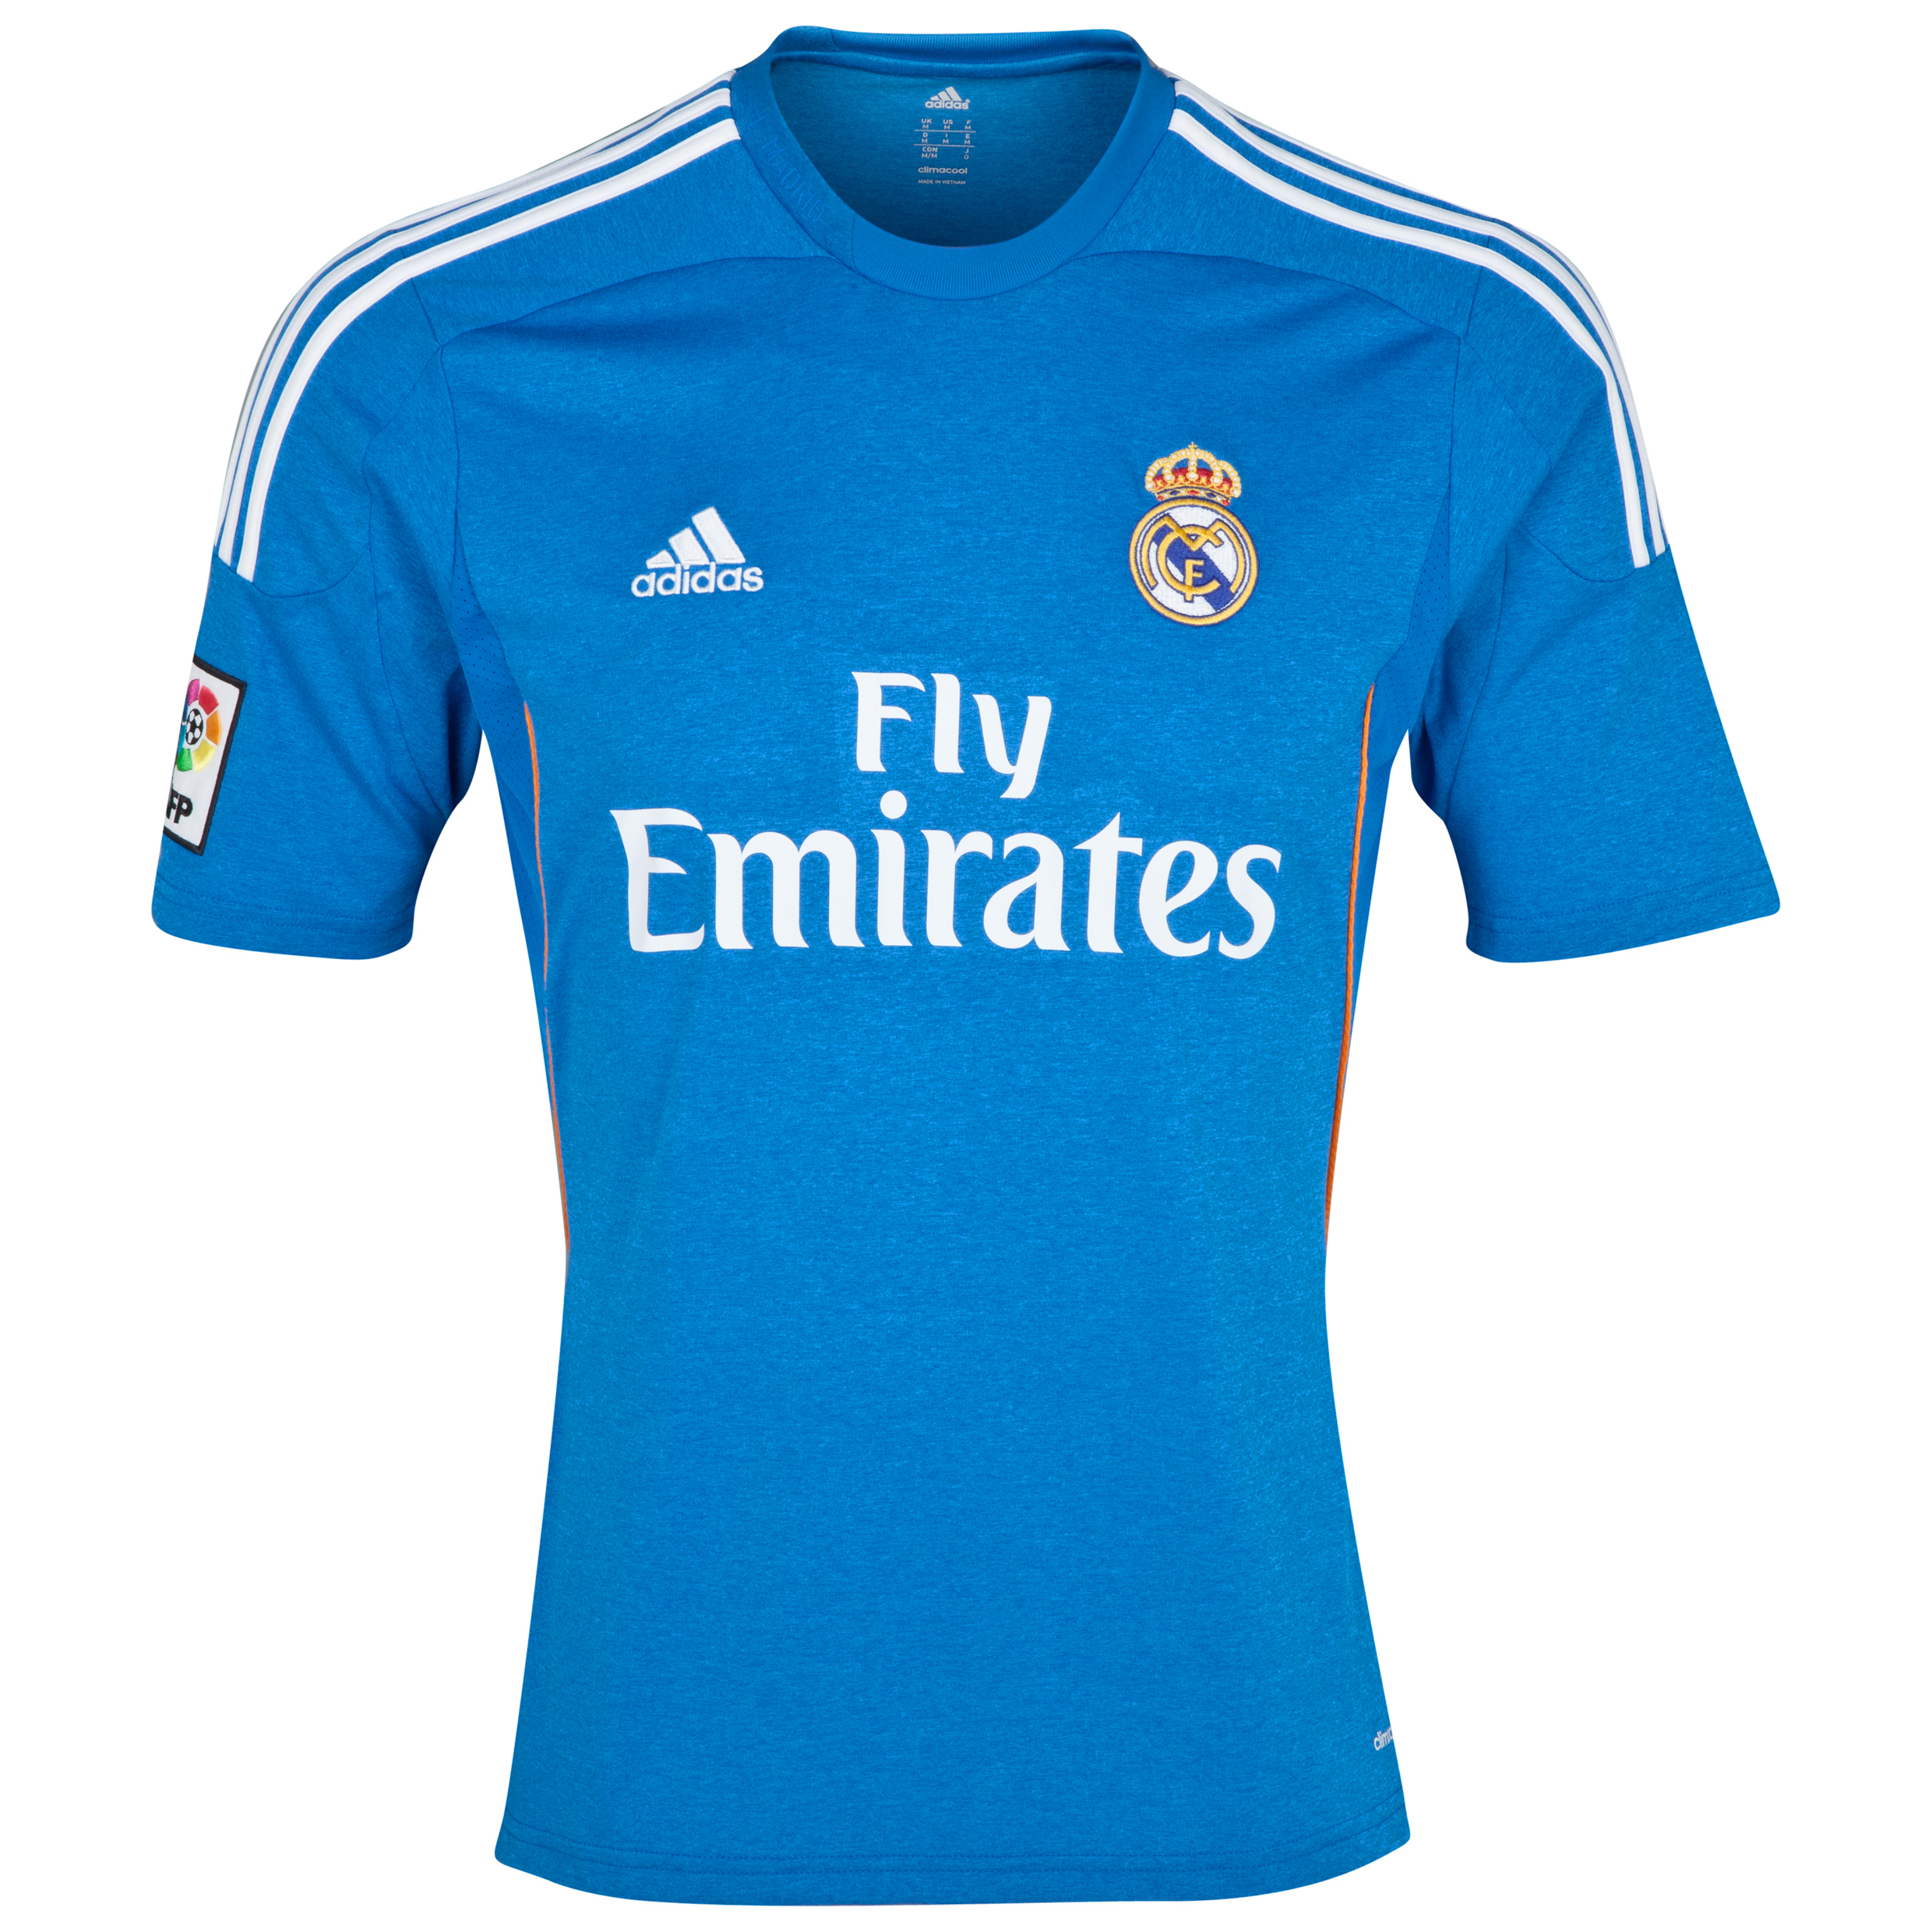 Buy Real Madrid Away Kit 2013/14